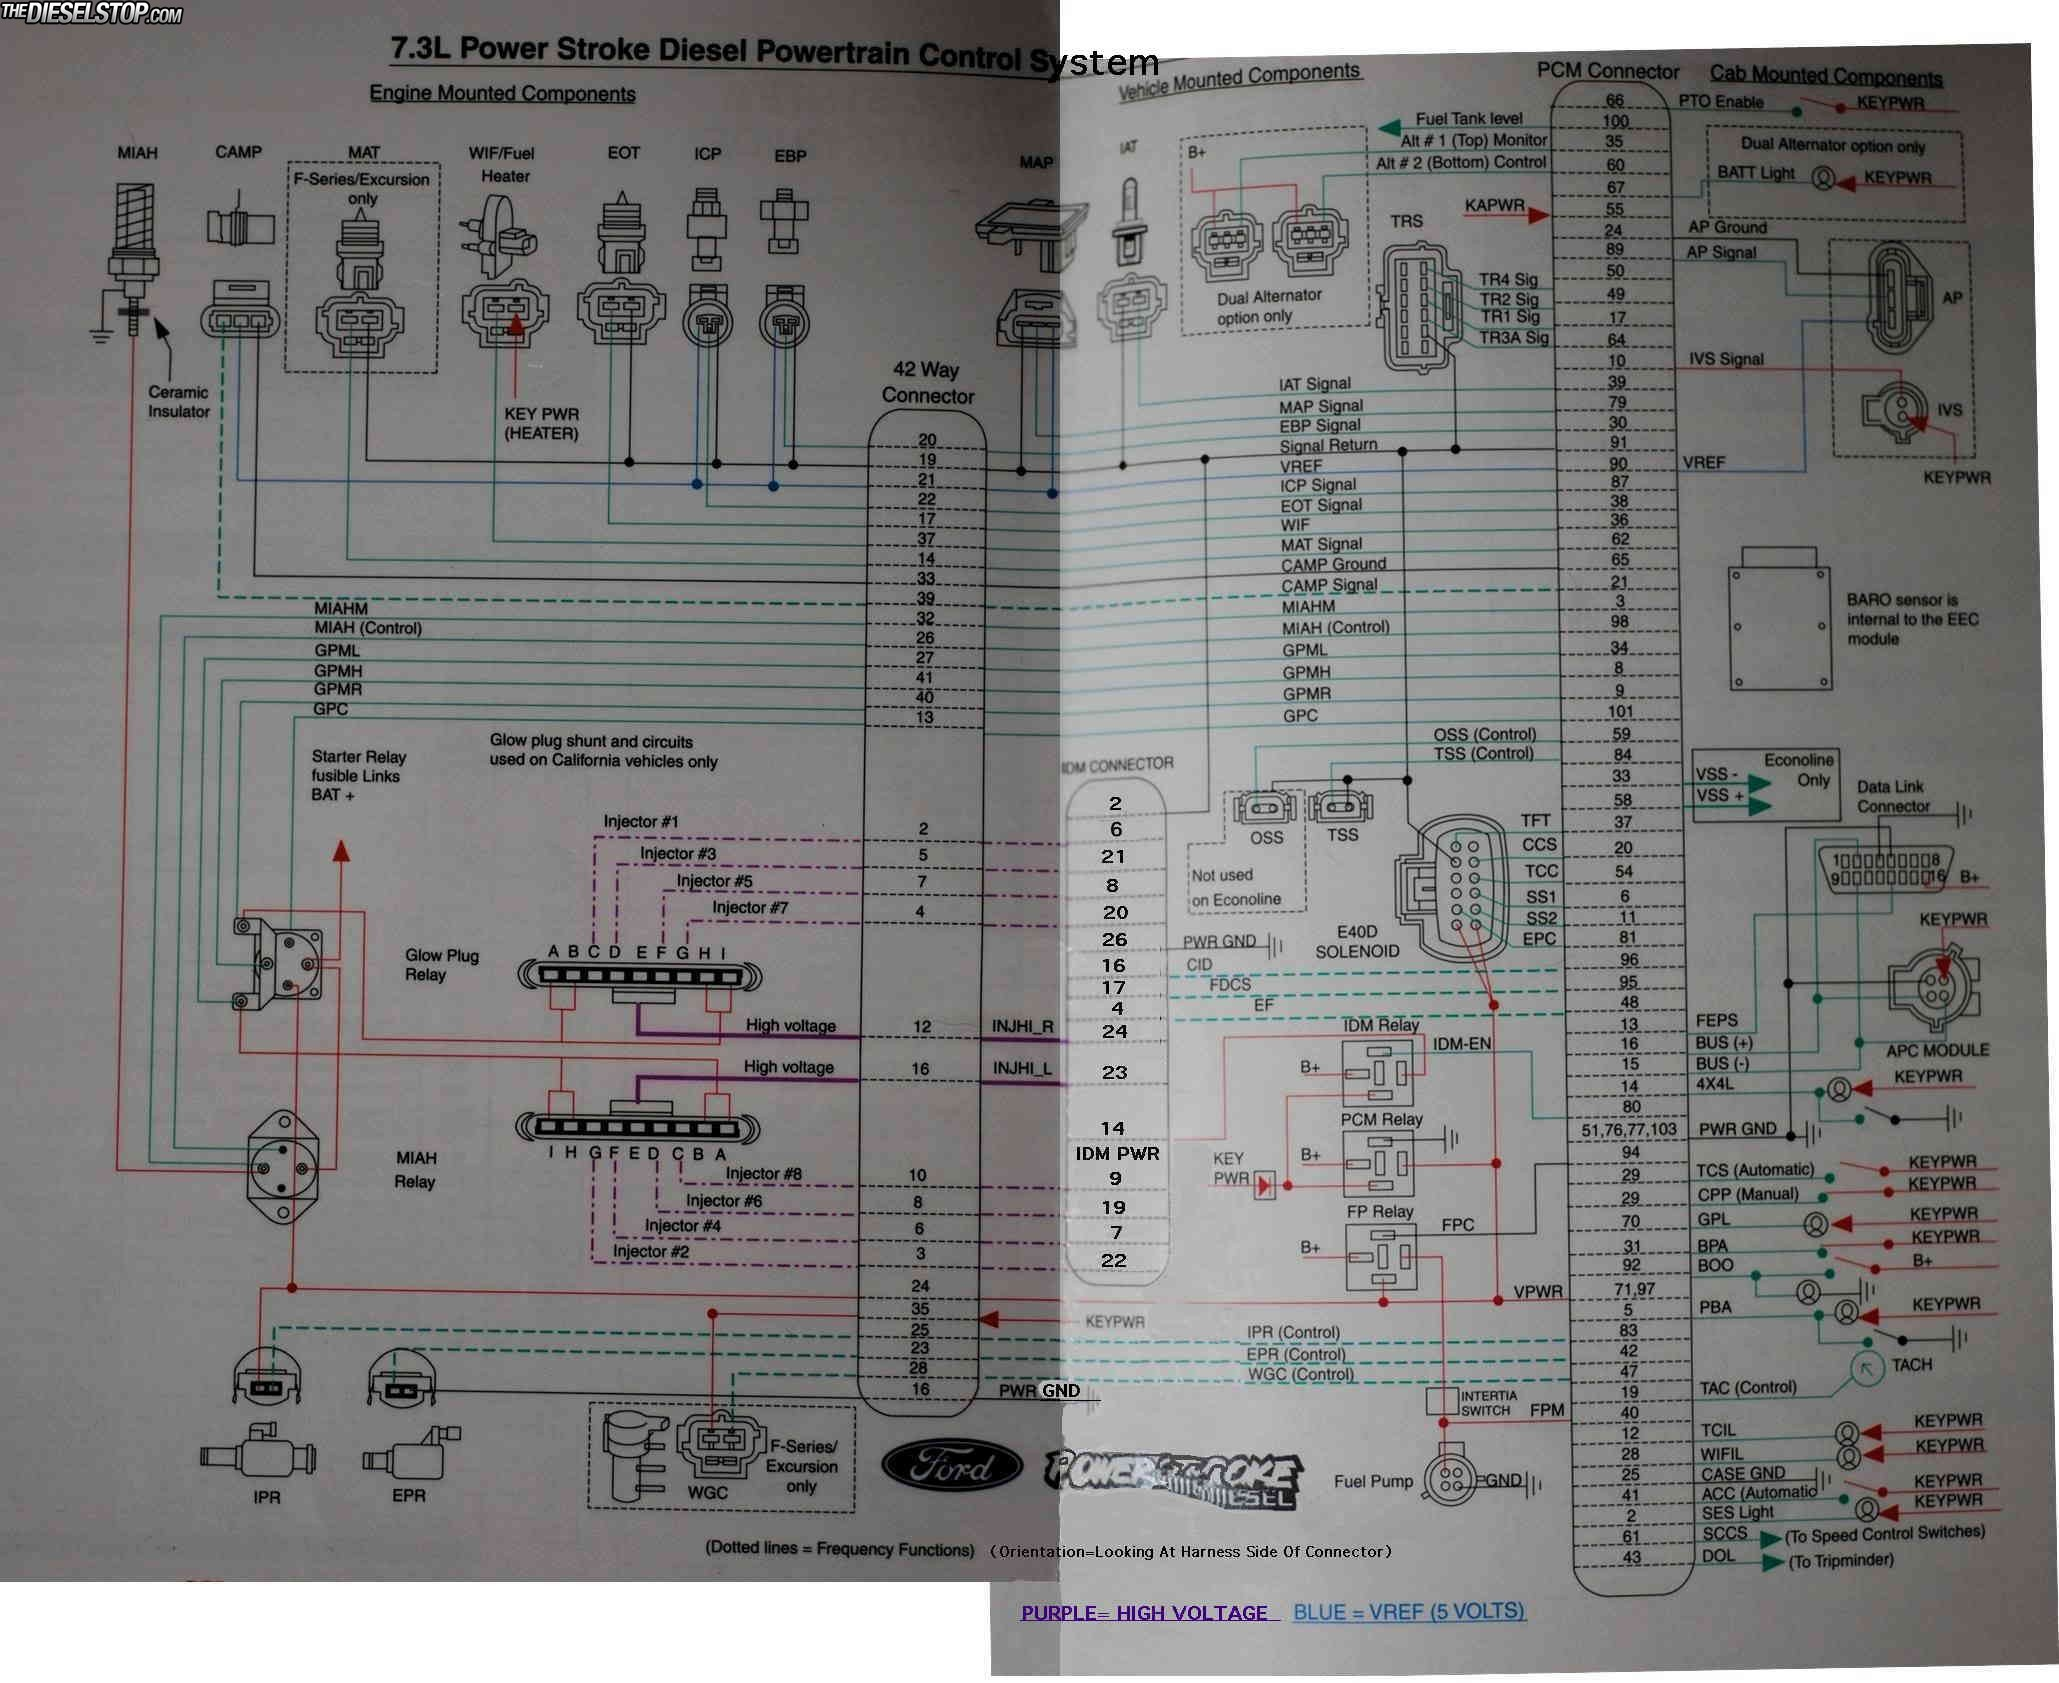 1996 Ford Diesel Engine Wiring Diagram Indepth Diagrams Tractor Engines 7 3 Oil Services U2022 Rh Wiringdiagramguide 4000